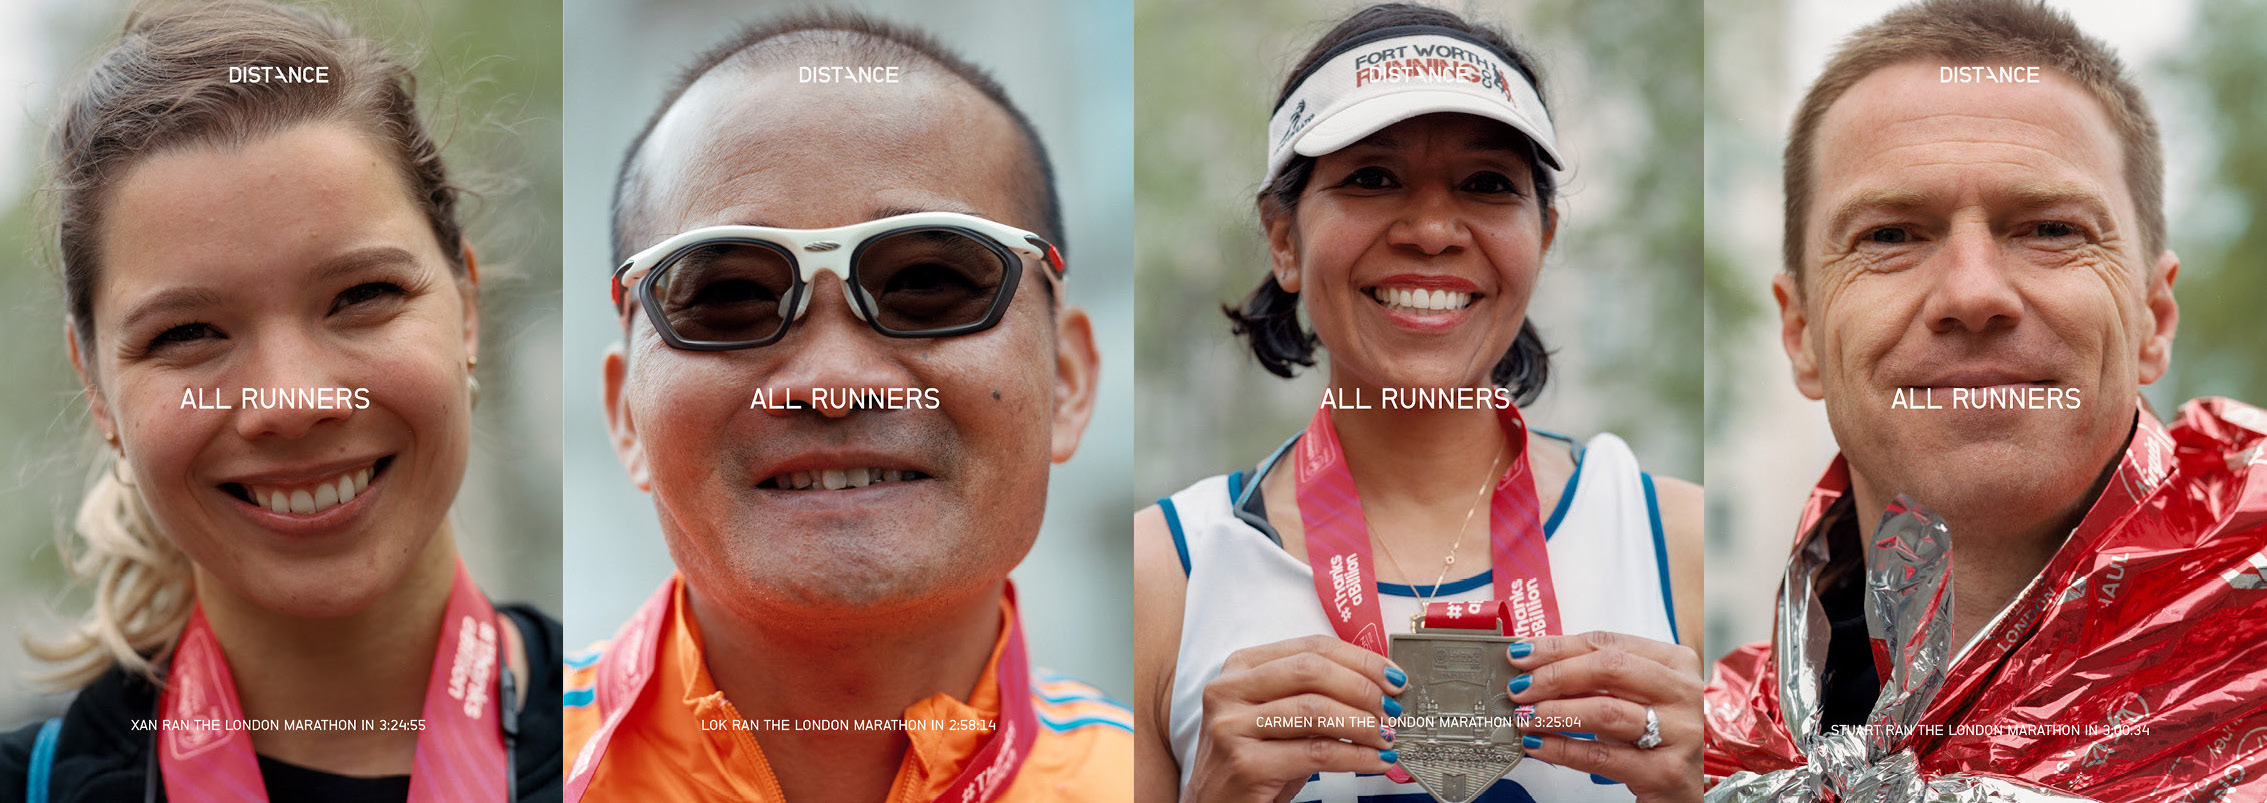 All Runners London by Wendy Huynh